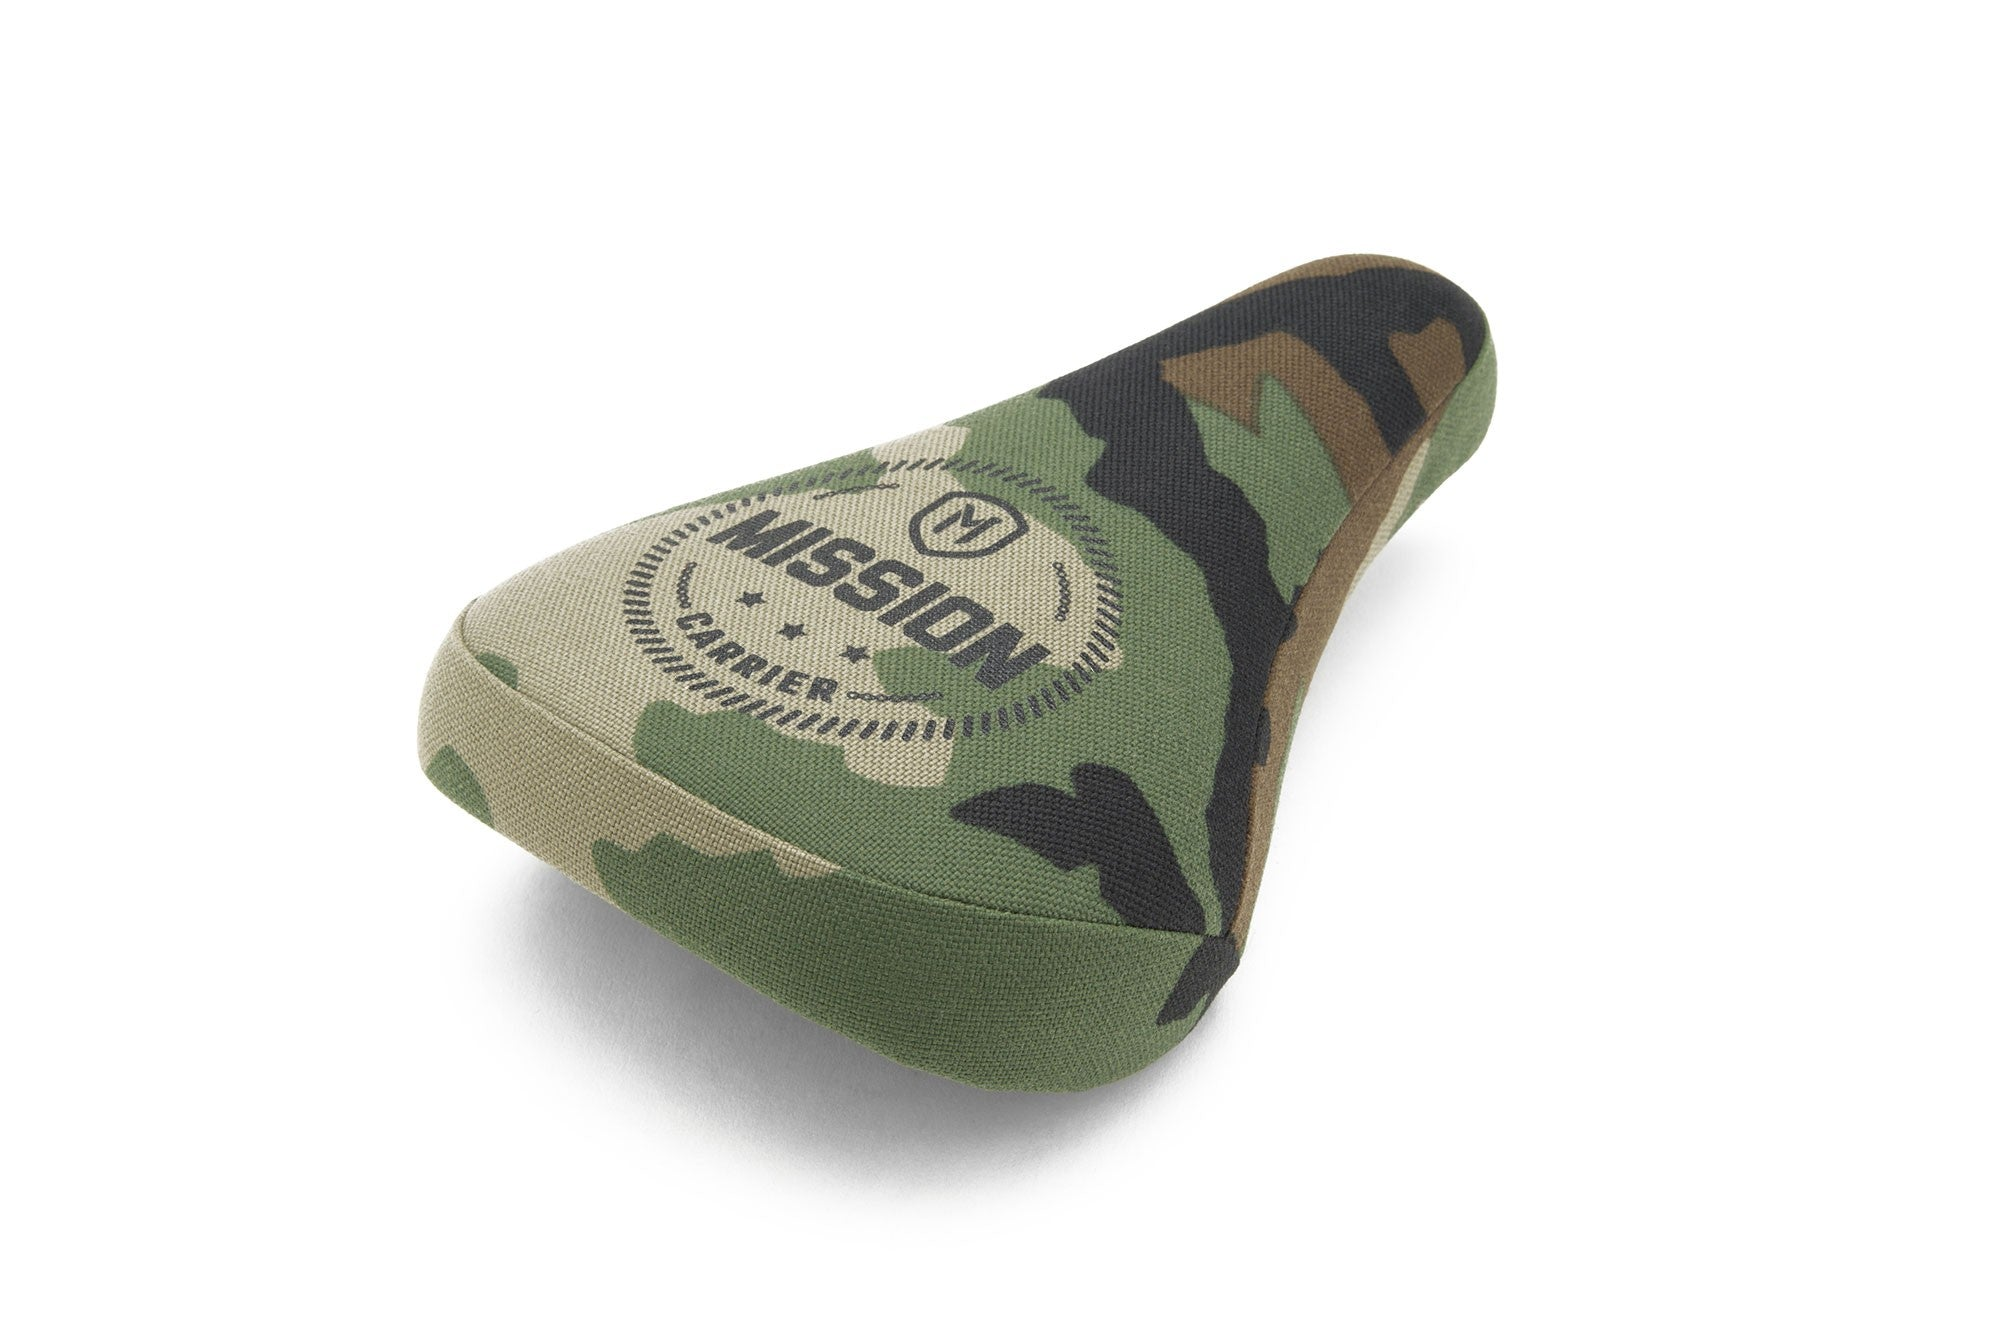 Mission Carrier Stealth Pivotal Padded BMX Seat - Camo